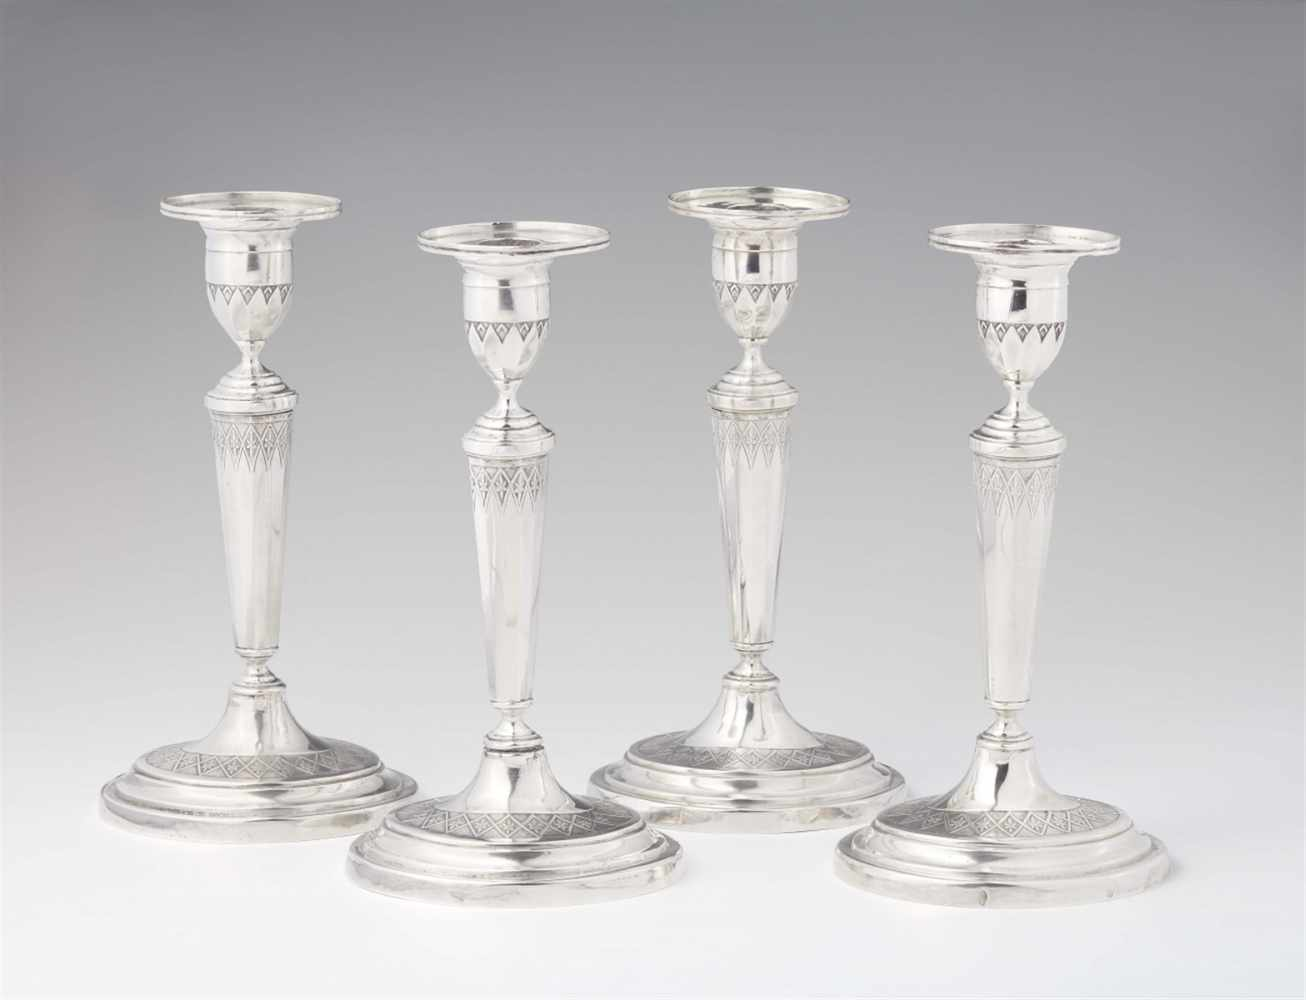 Lot 343 - A set of four Augsburg silver candlesticksOval bases supporting fluted shafts and vase shaped